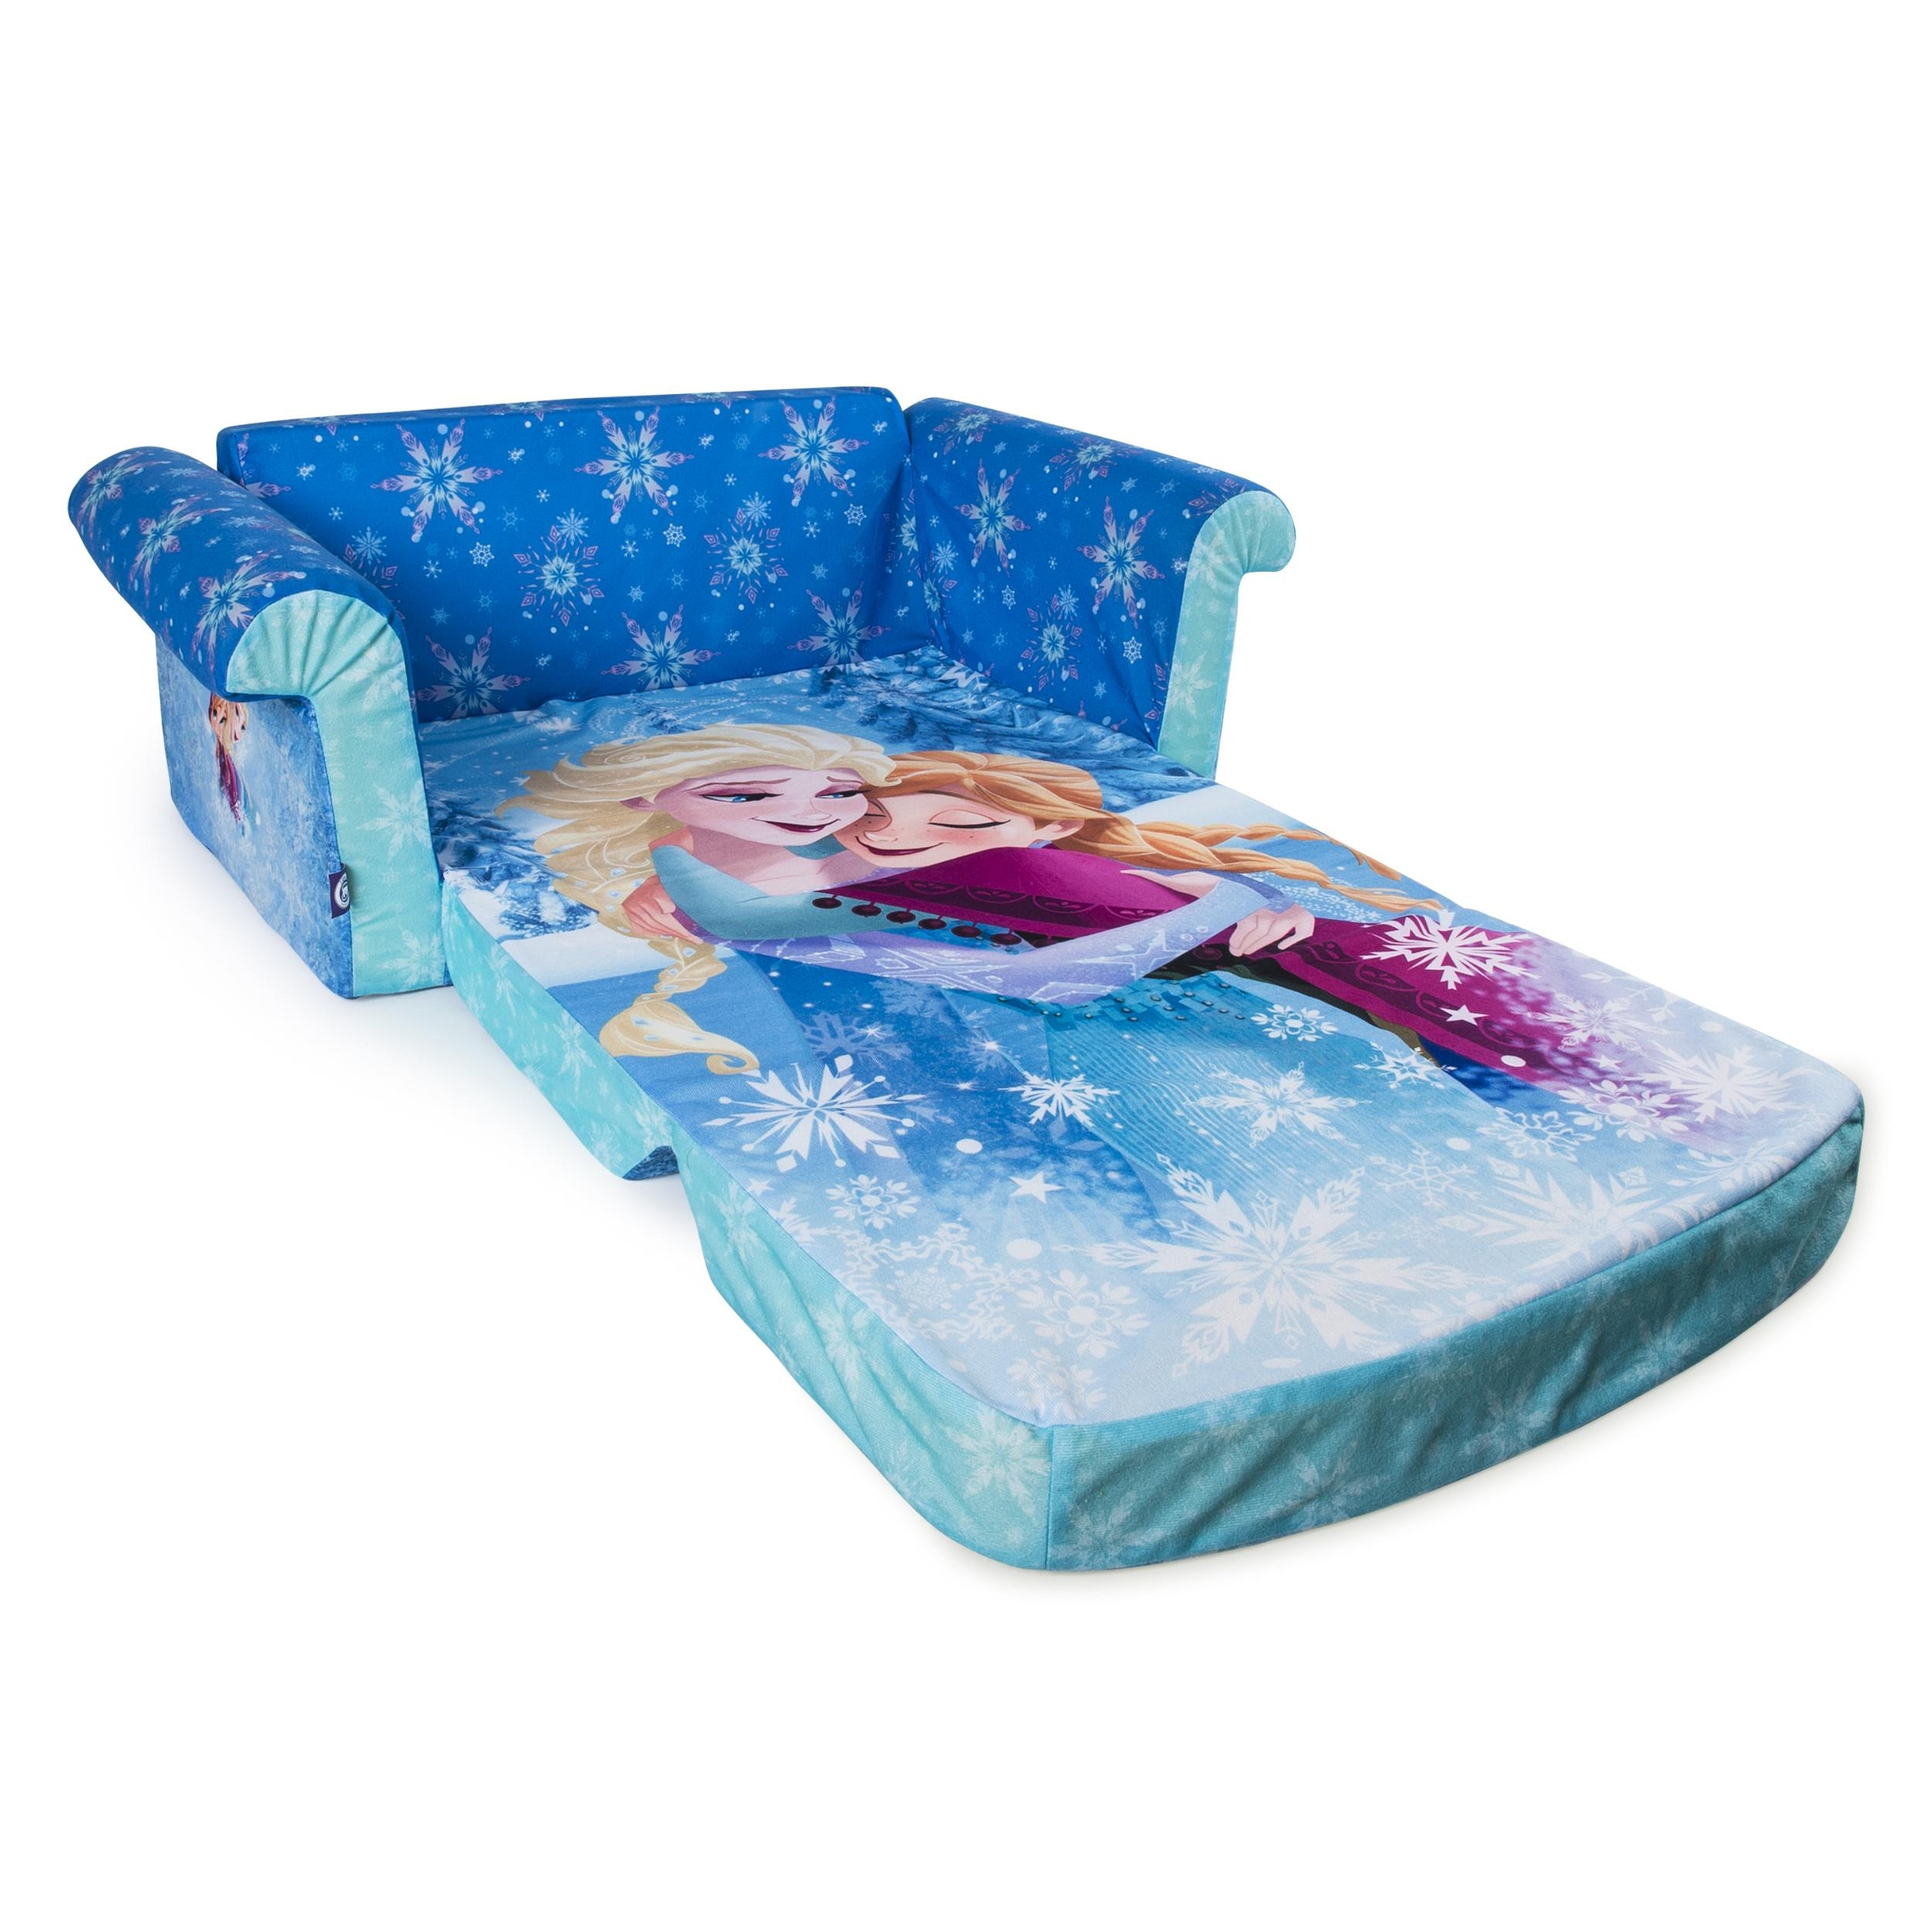 Marshmallow Furniture, Children's 2 In 1 Flip Open Foam Sofa Inside Disney Sofa Chairs (Image 13 of 20)